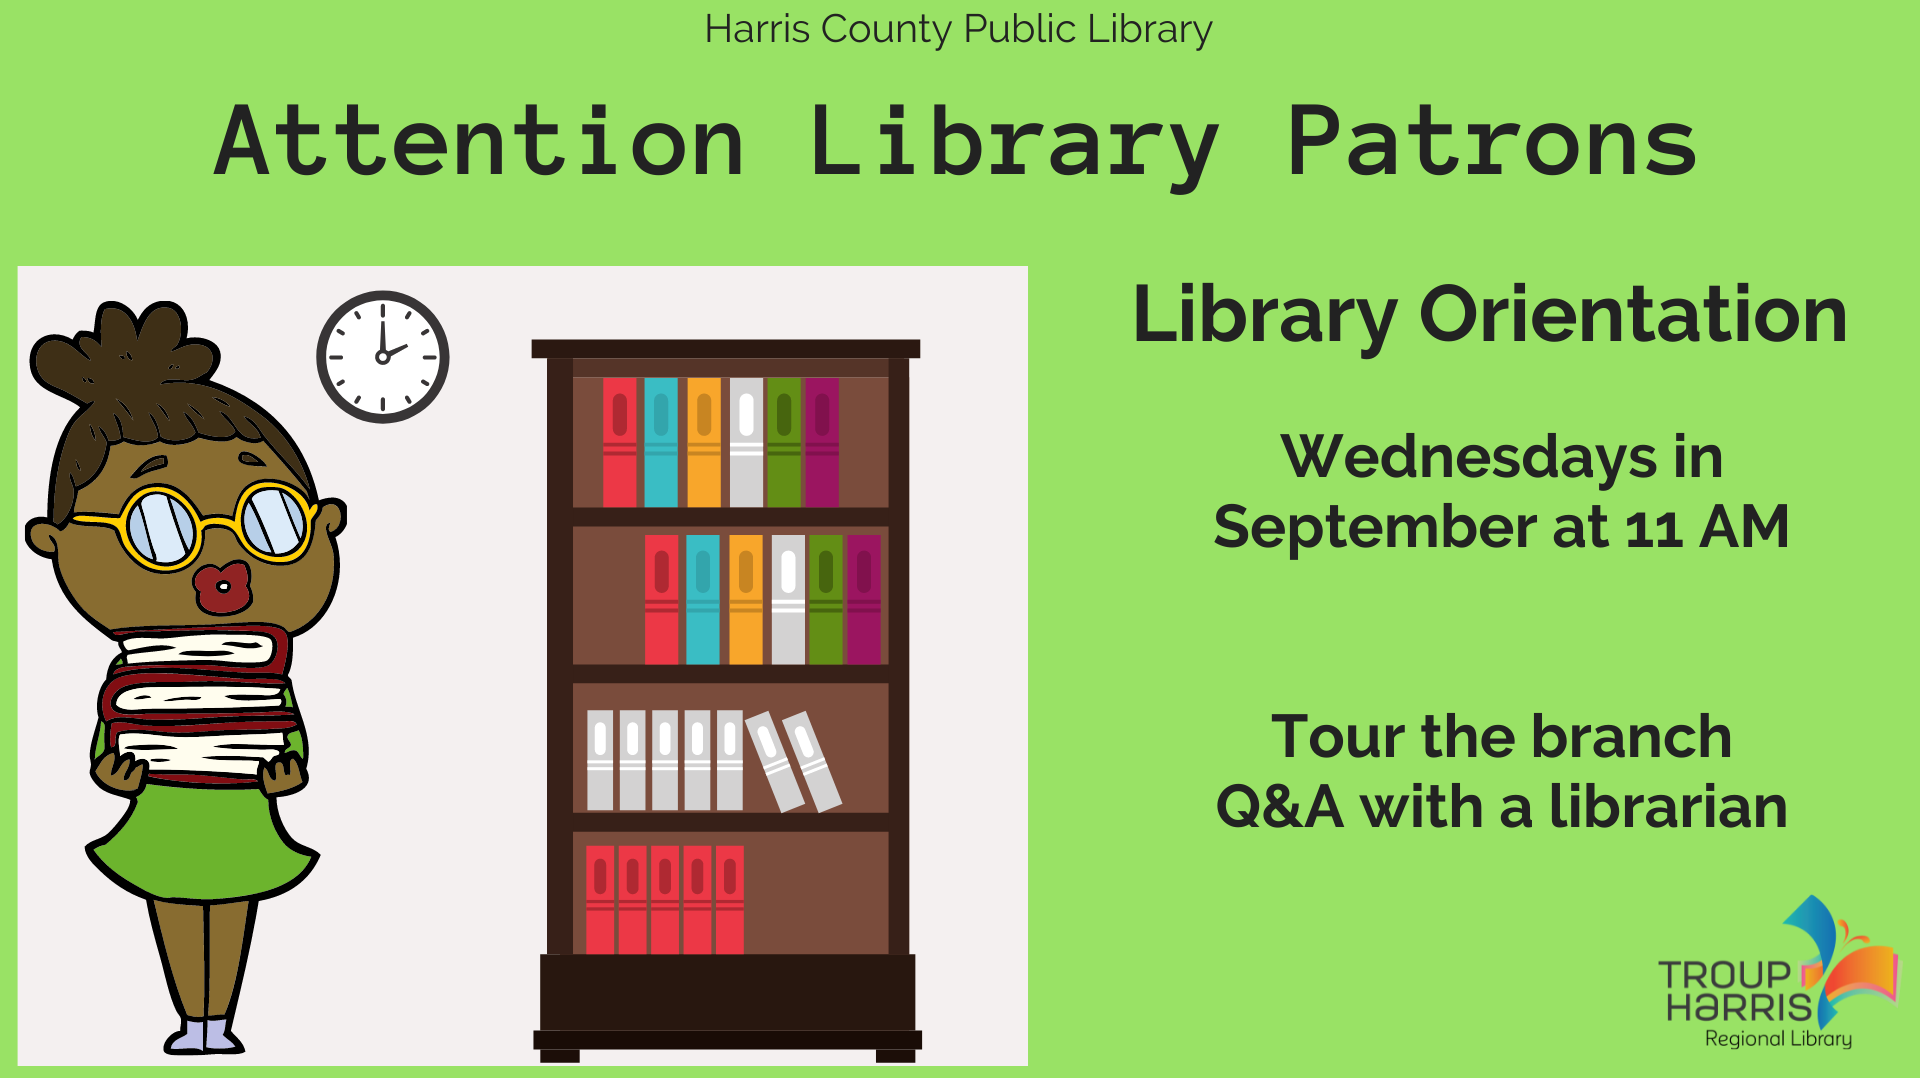 Tour the Harris County Public Library and have your questions answered by a librarian from 11 to 11:30 AM every Wednesday.